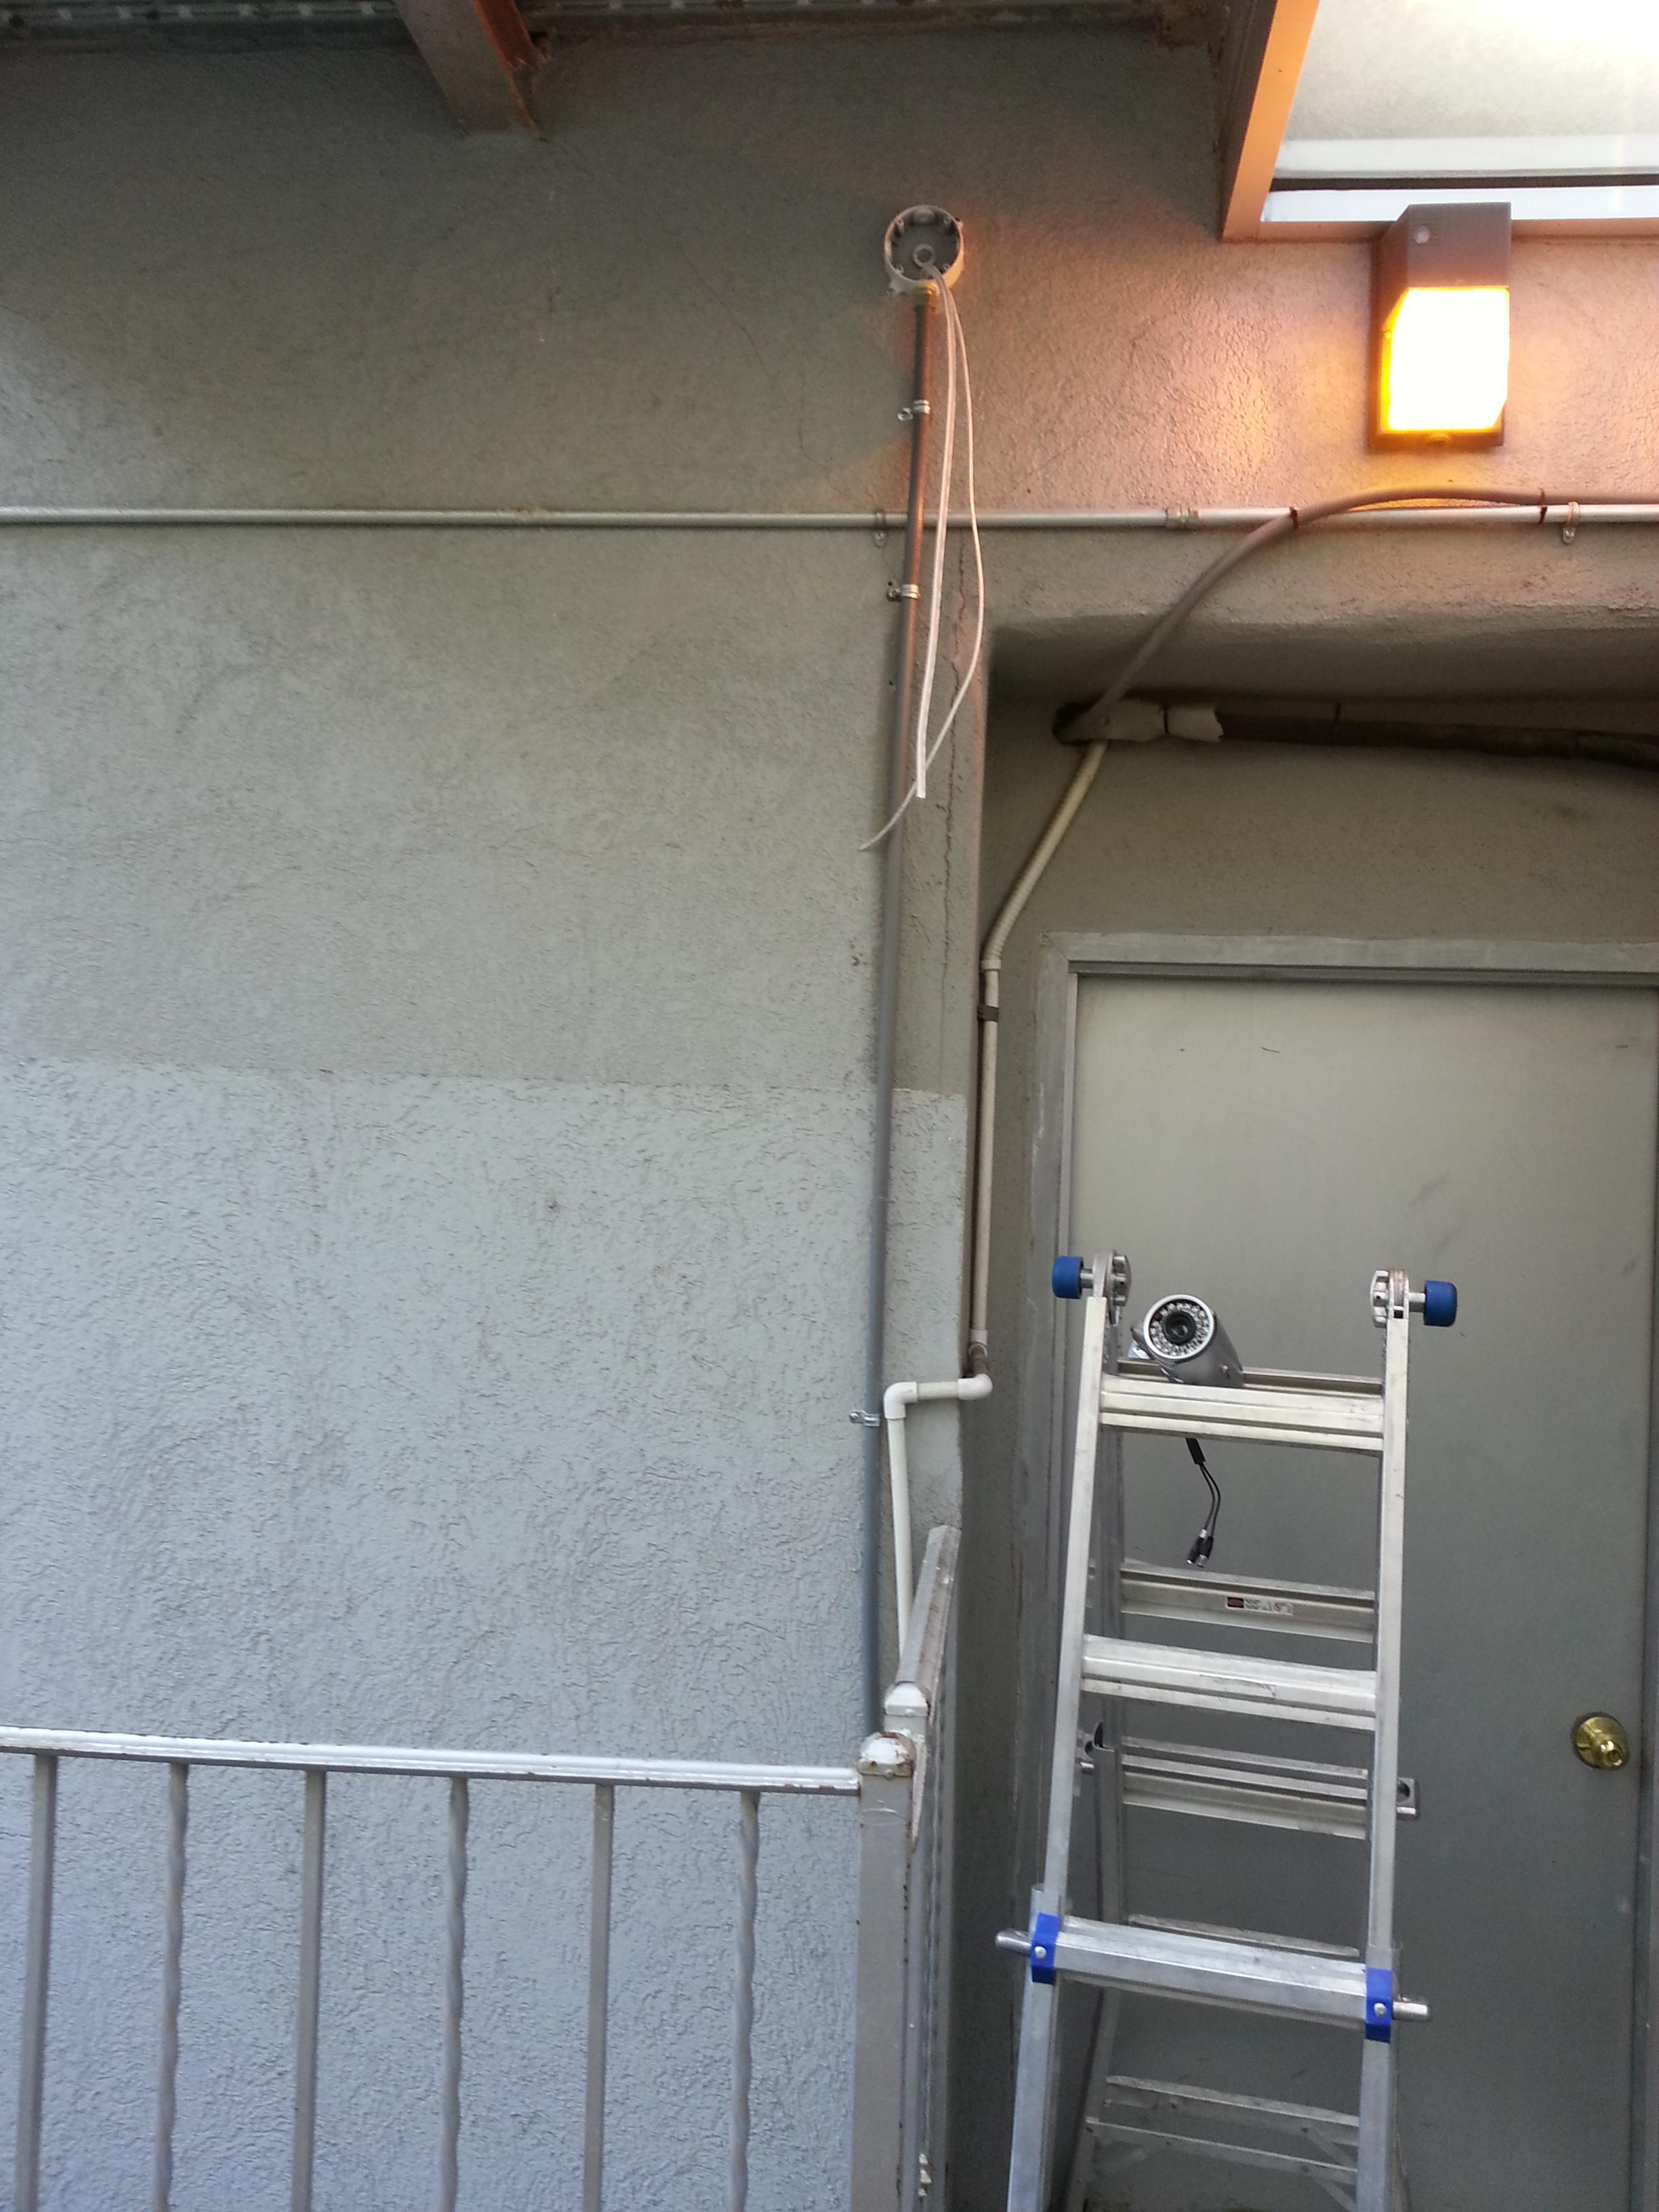 Process of installation security cameraat residential building of Upper West Side in Manhattan, NY